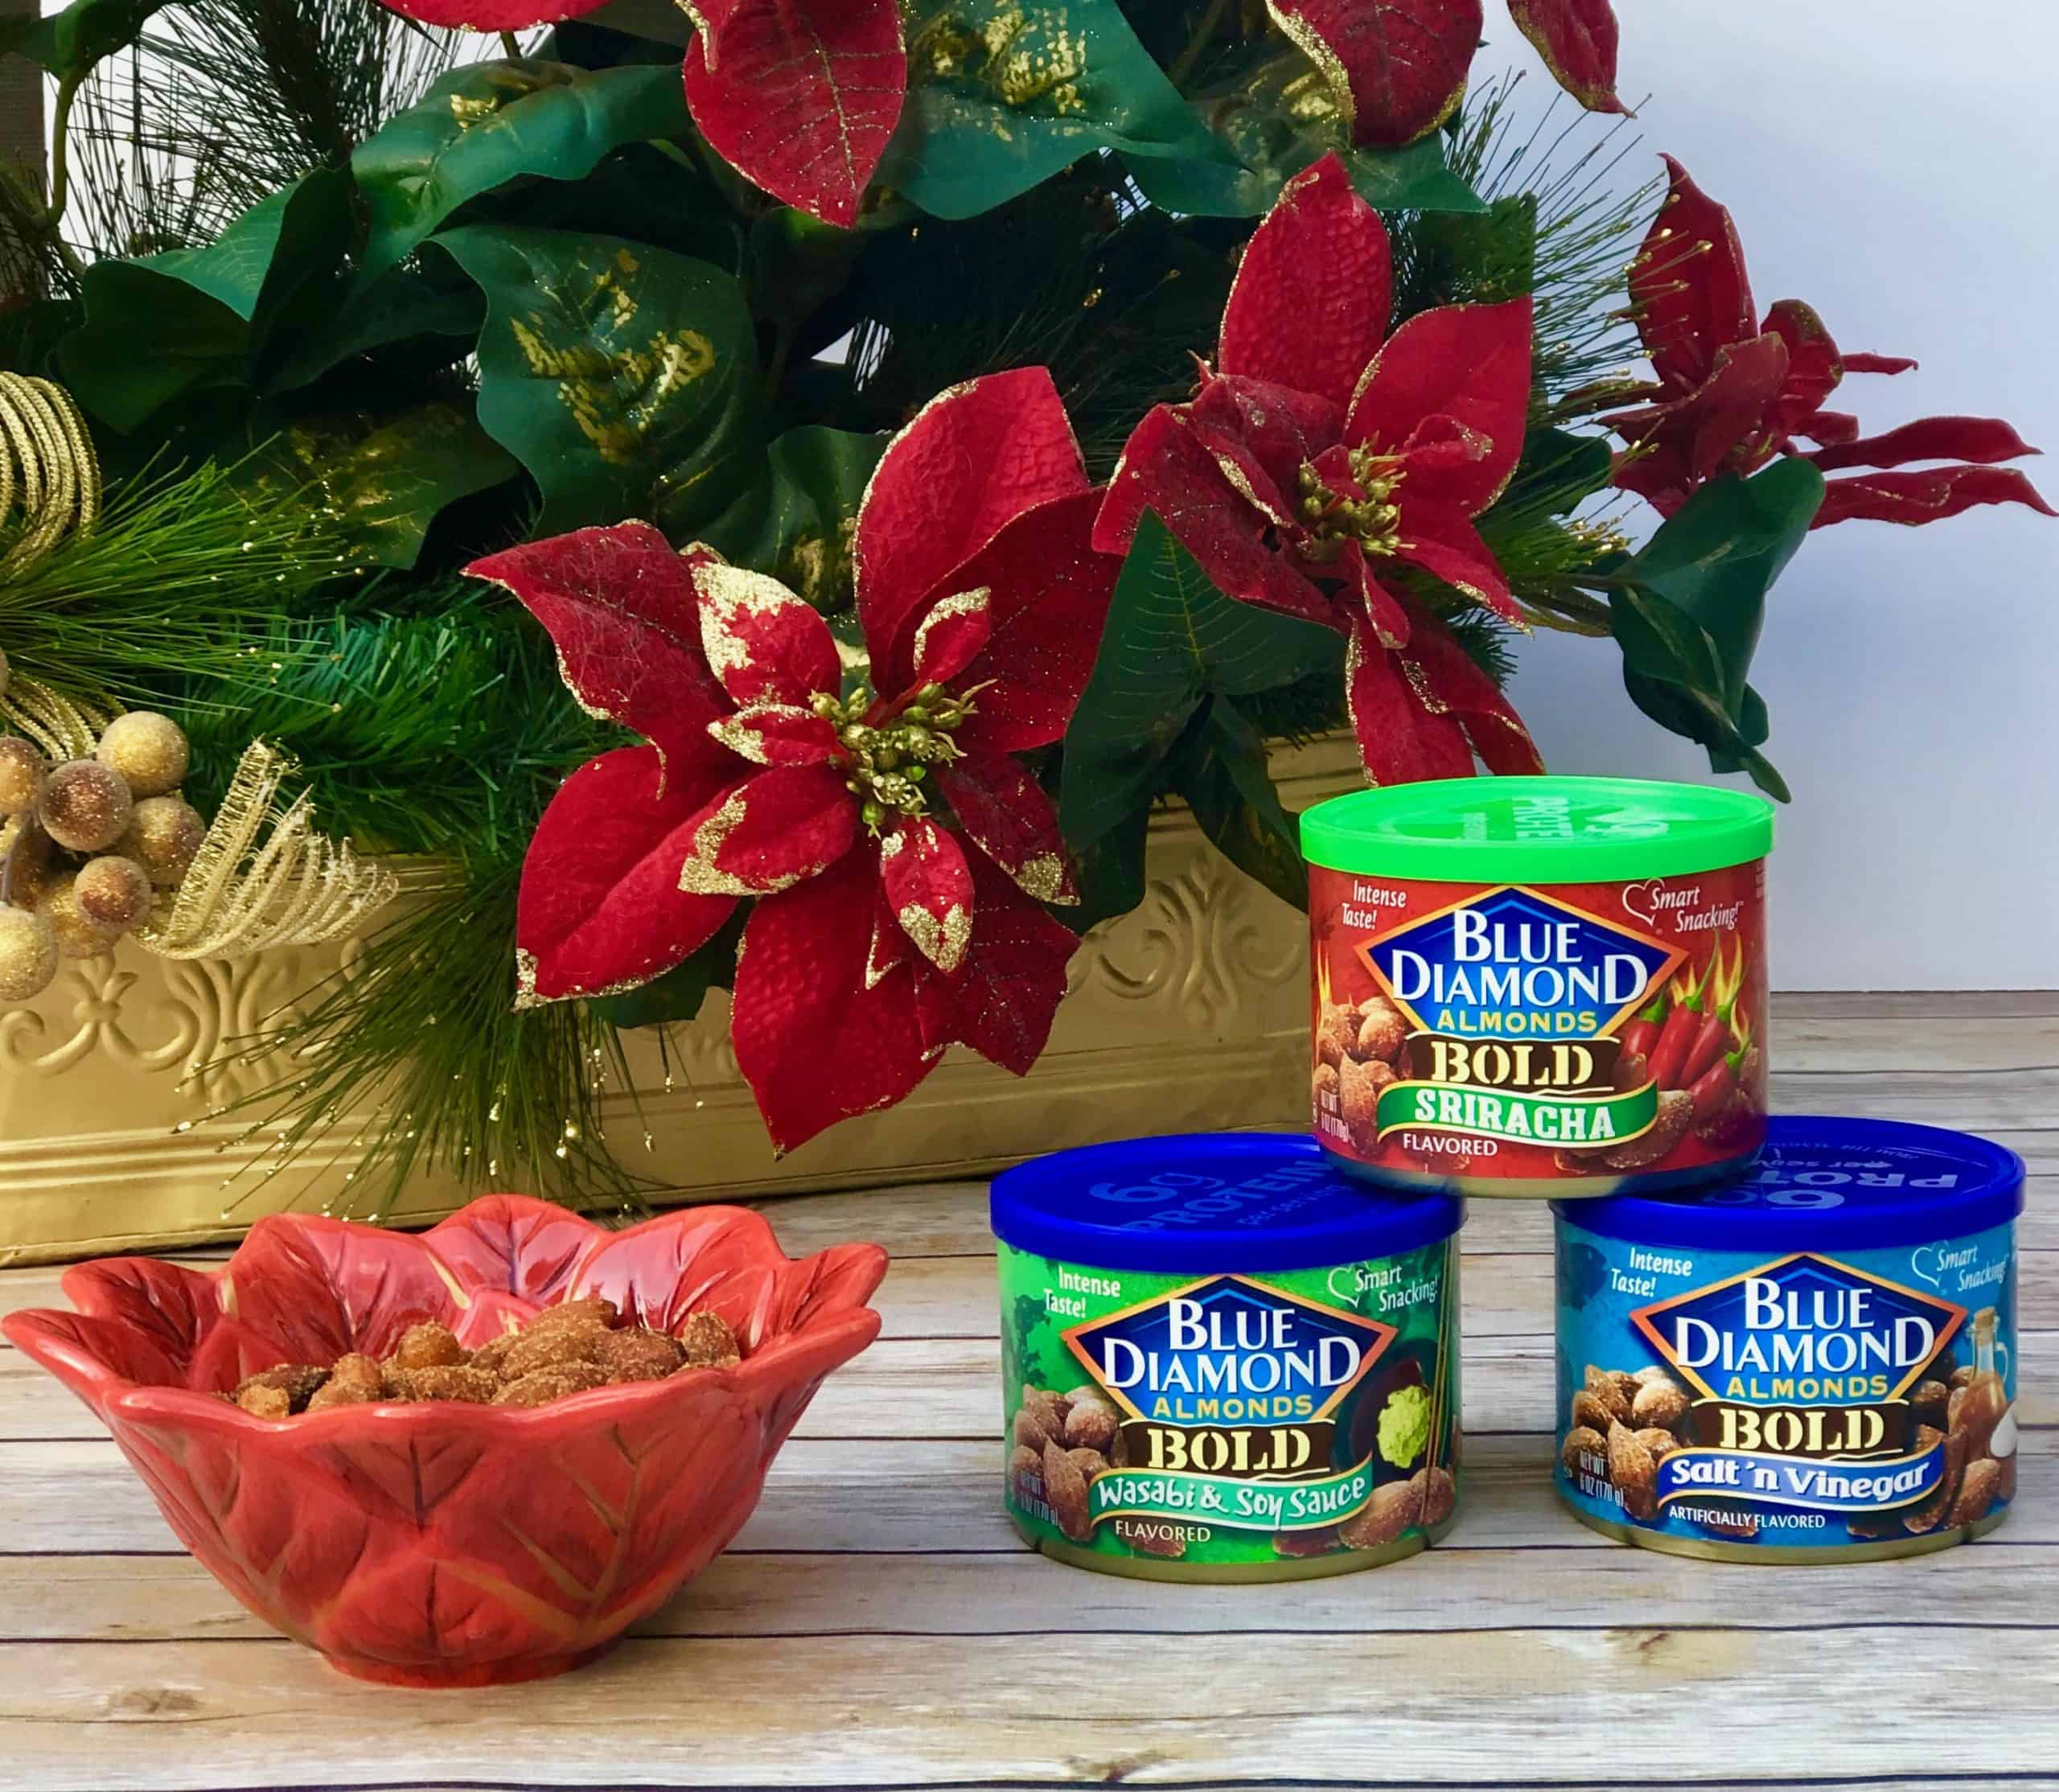 Blue Diamond Almonds in cans and in holiday bowl with poinsettias in background.